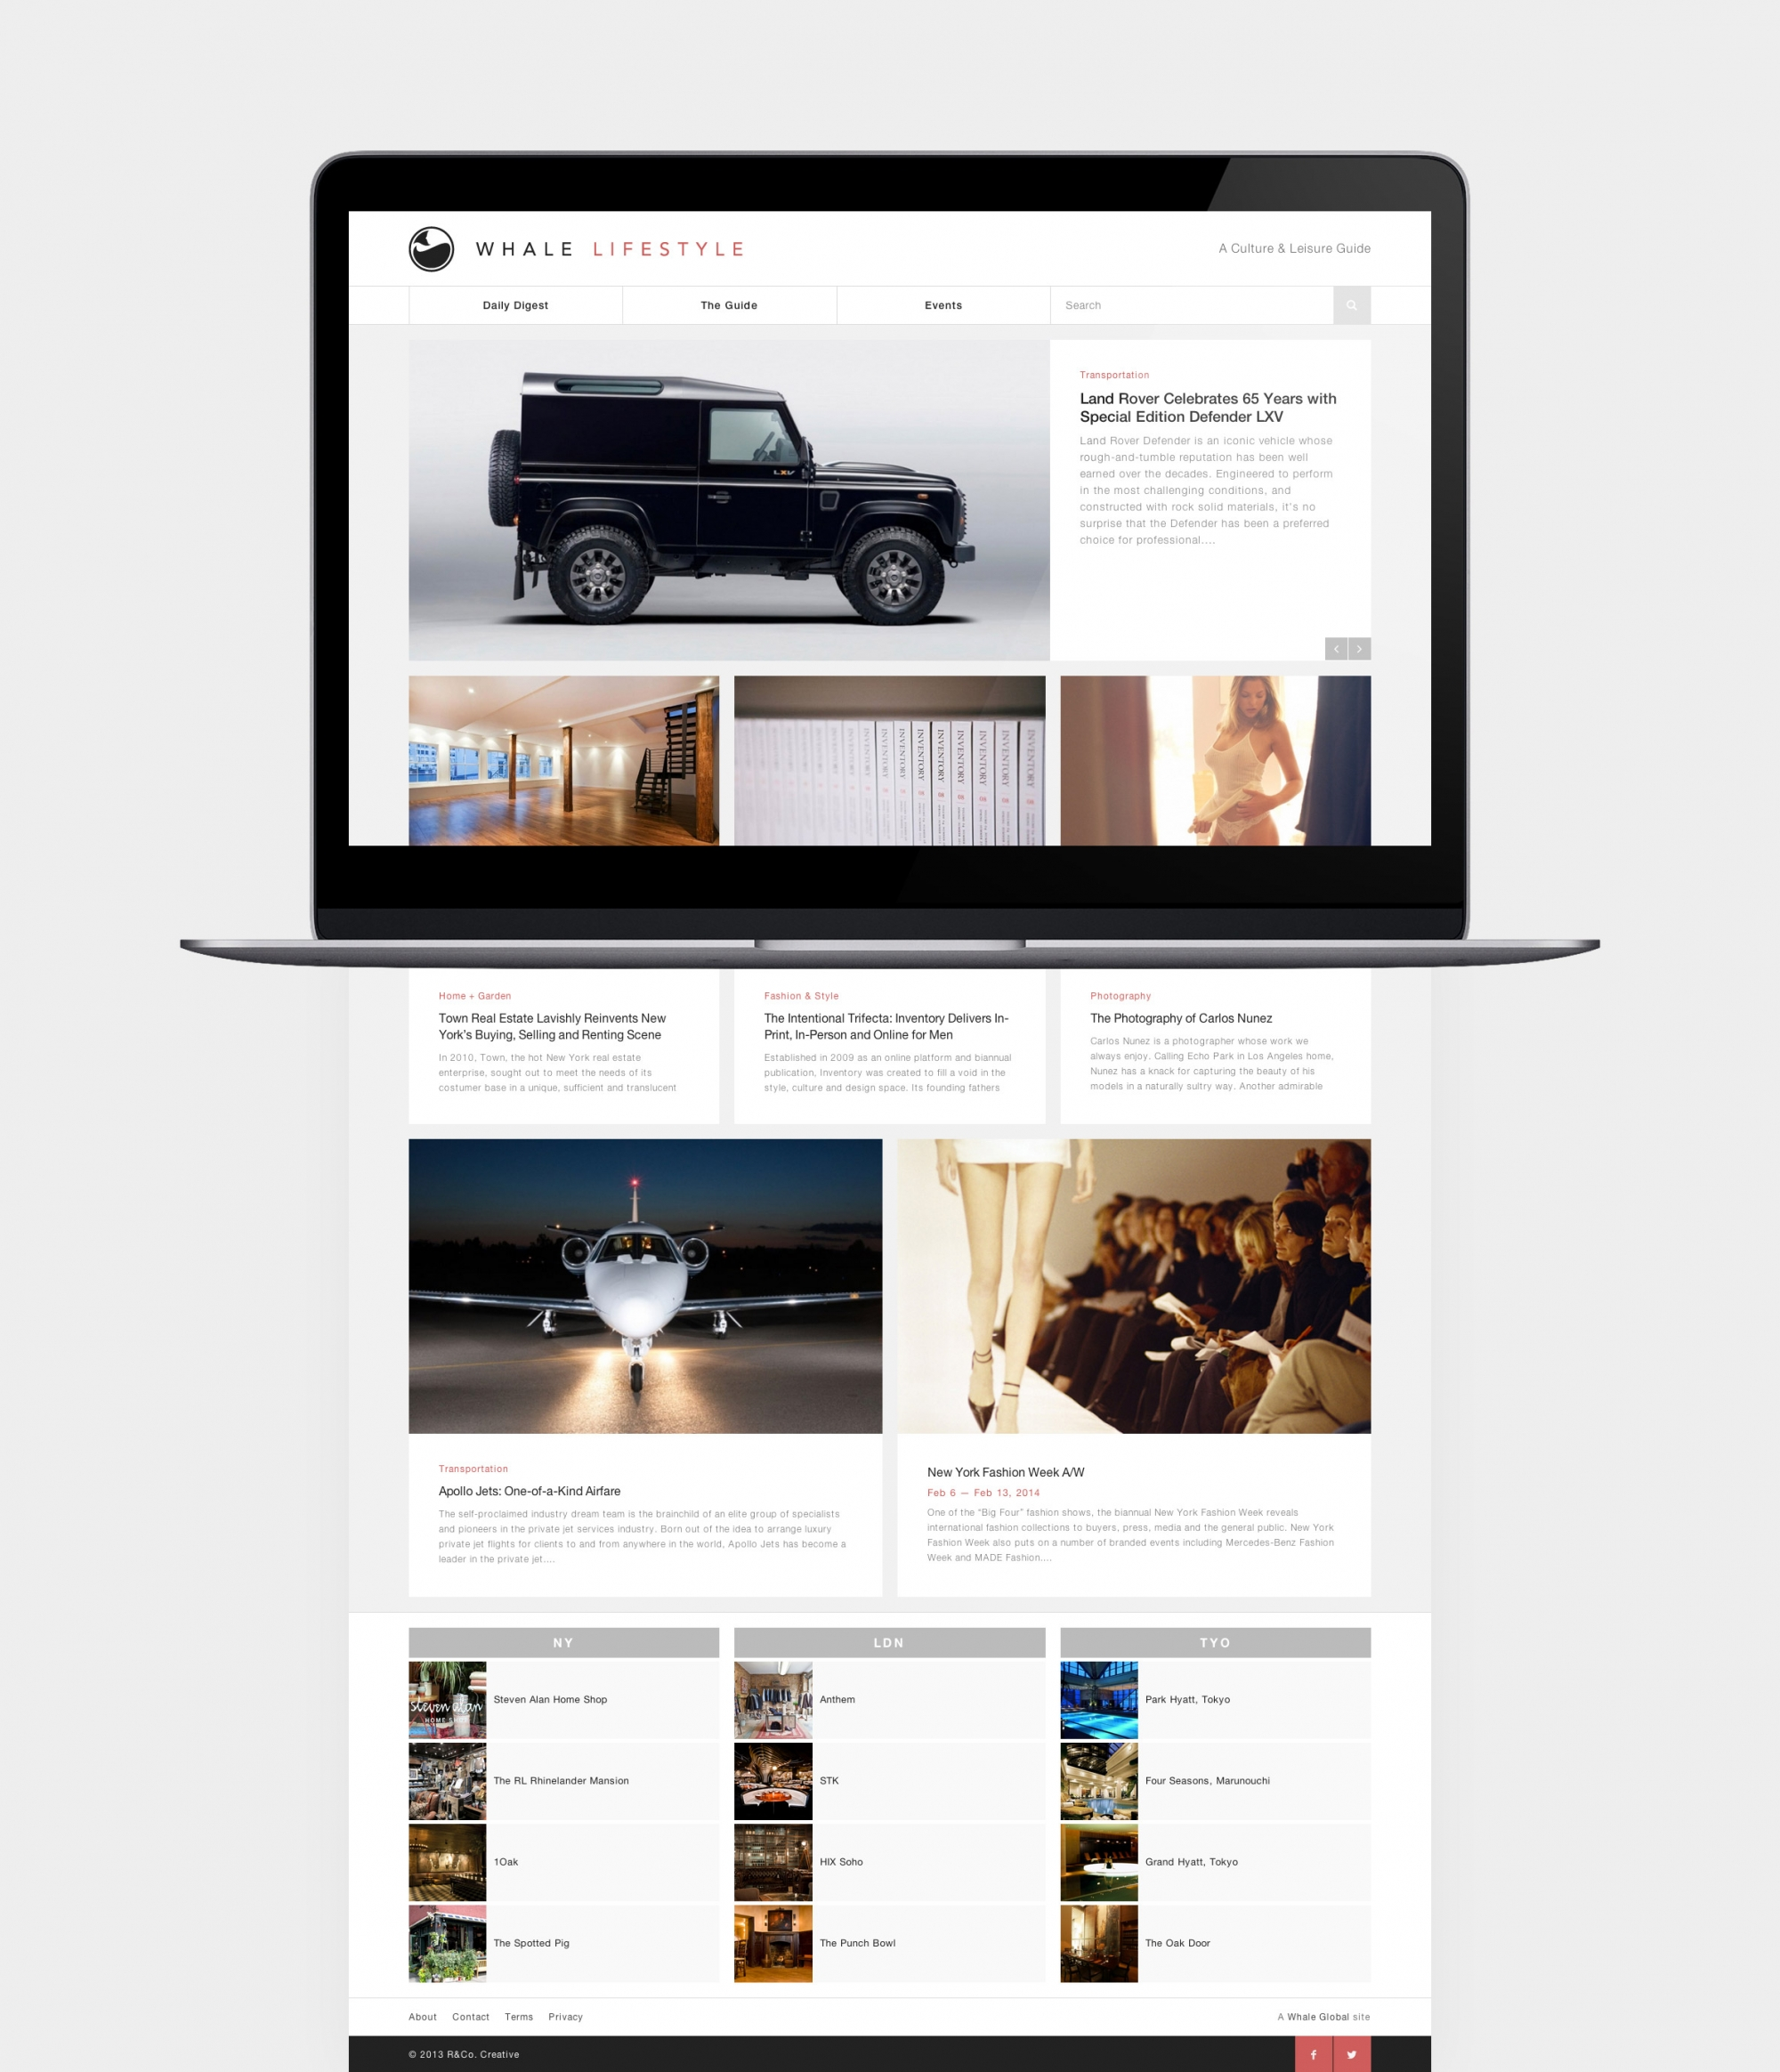 Whale Lifestyle v.1 responsive web design by Ryan Paonessa